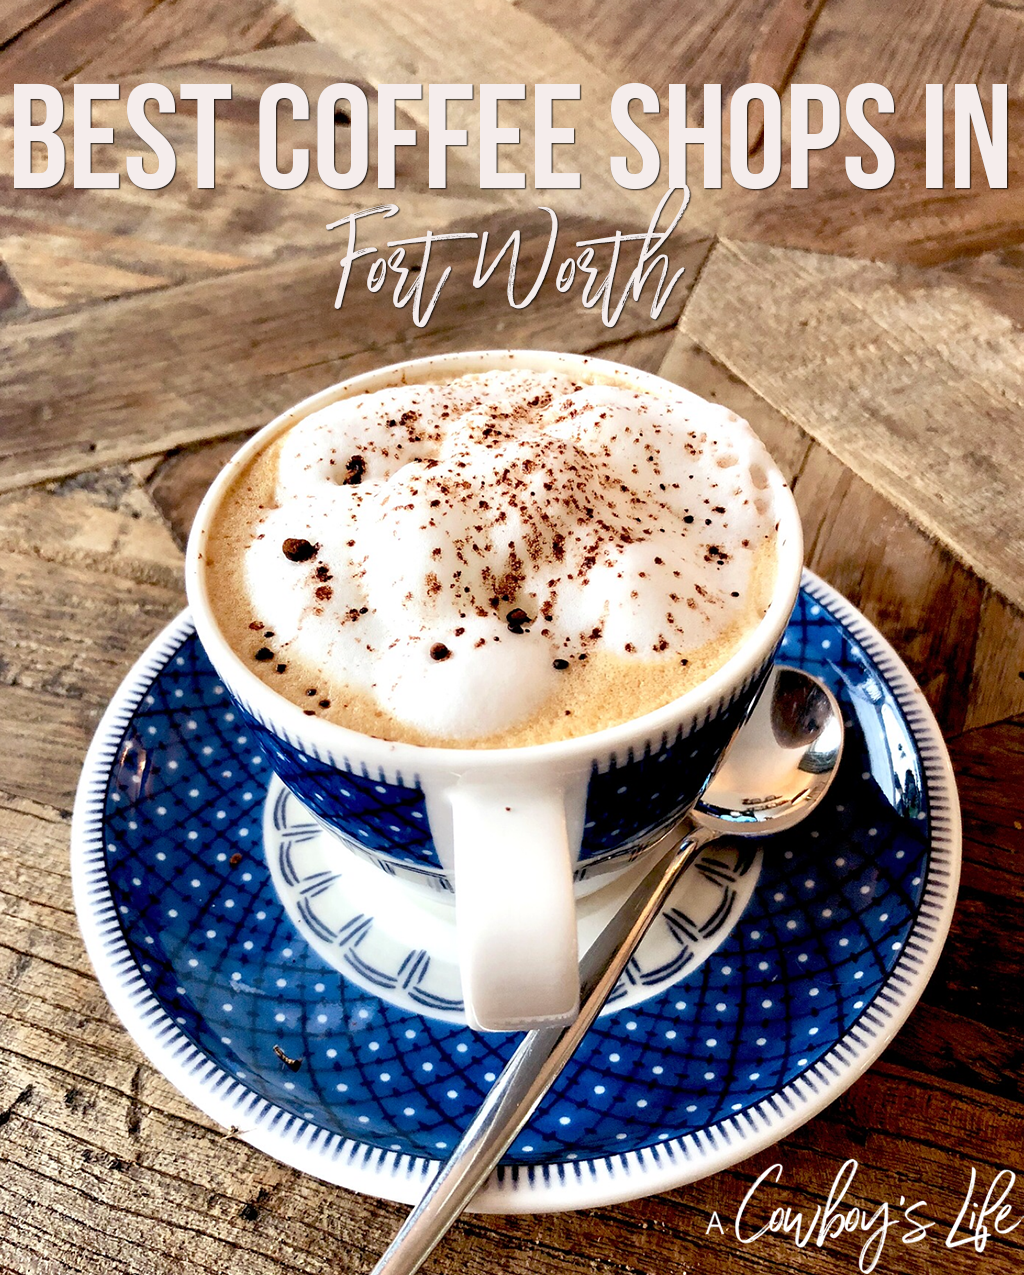 17 Best Coffee Shops in Fort Worth to Visit (in 2021)